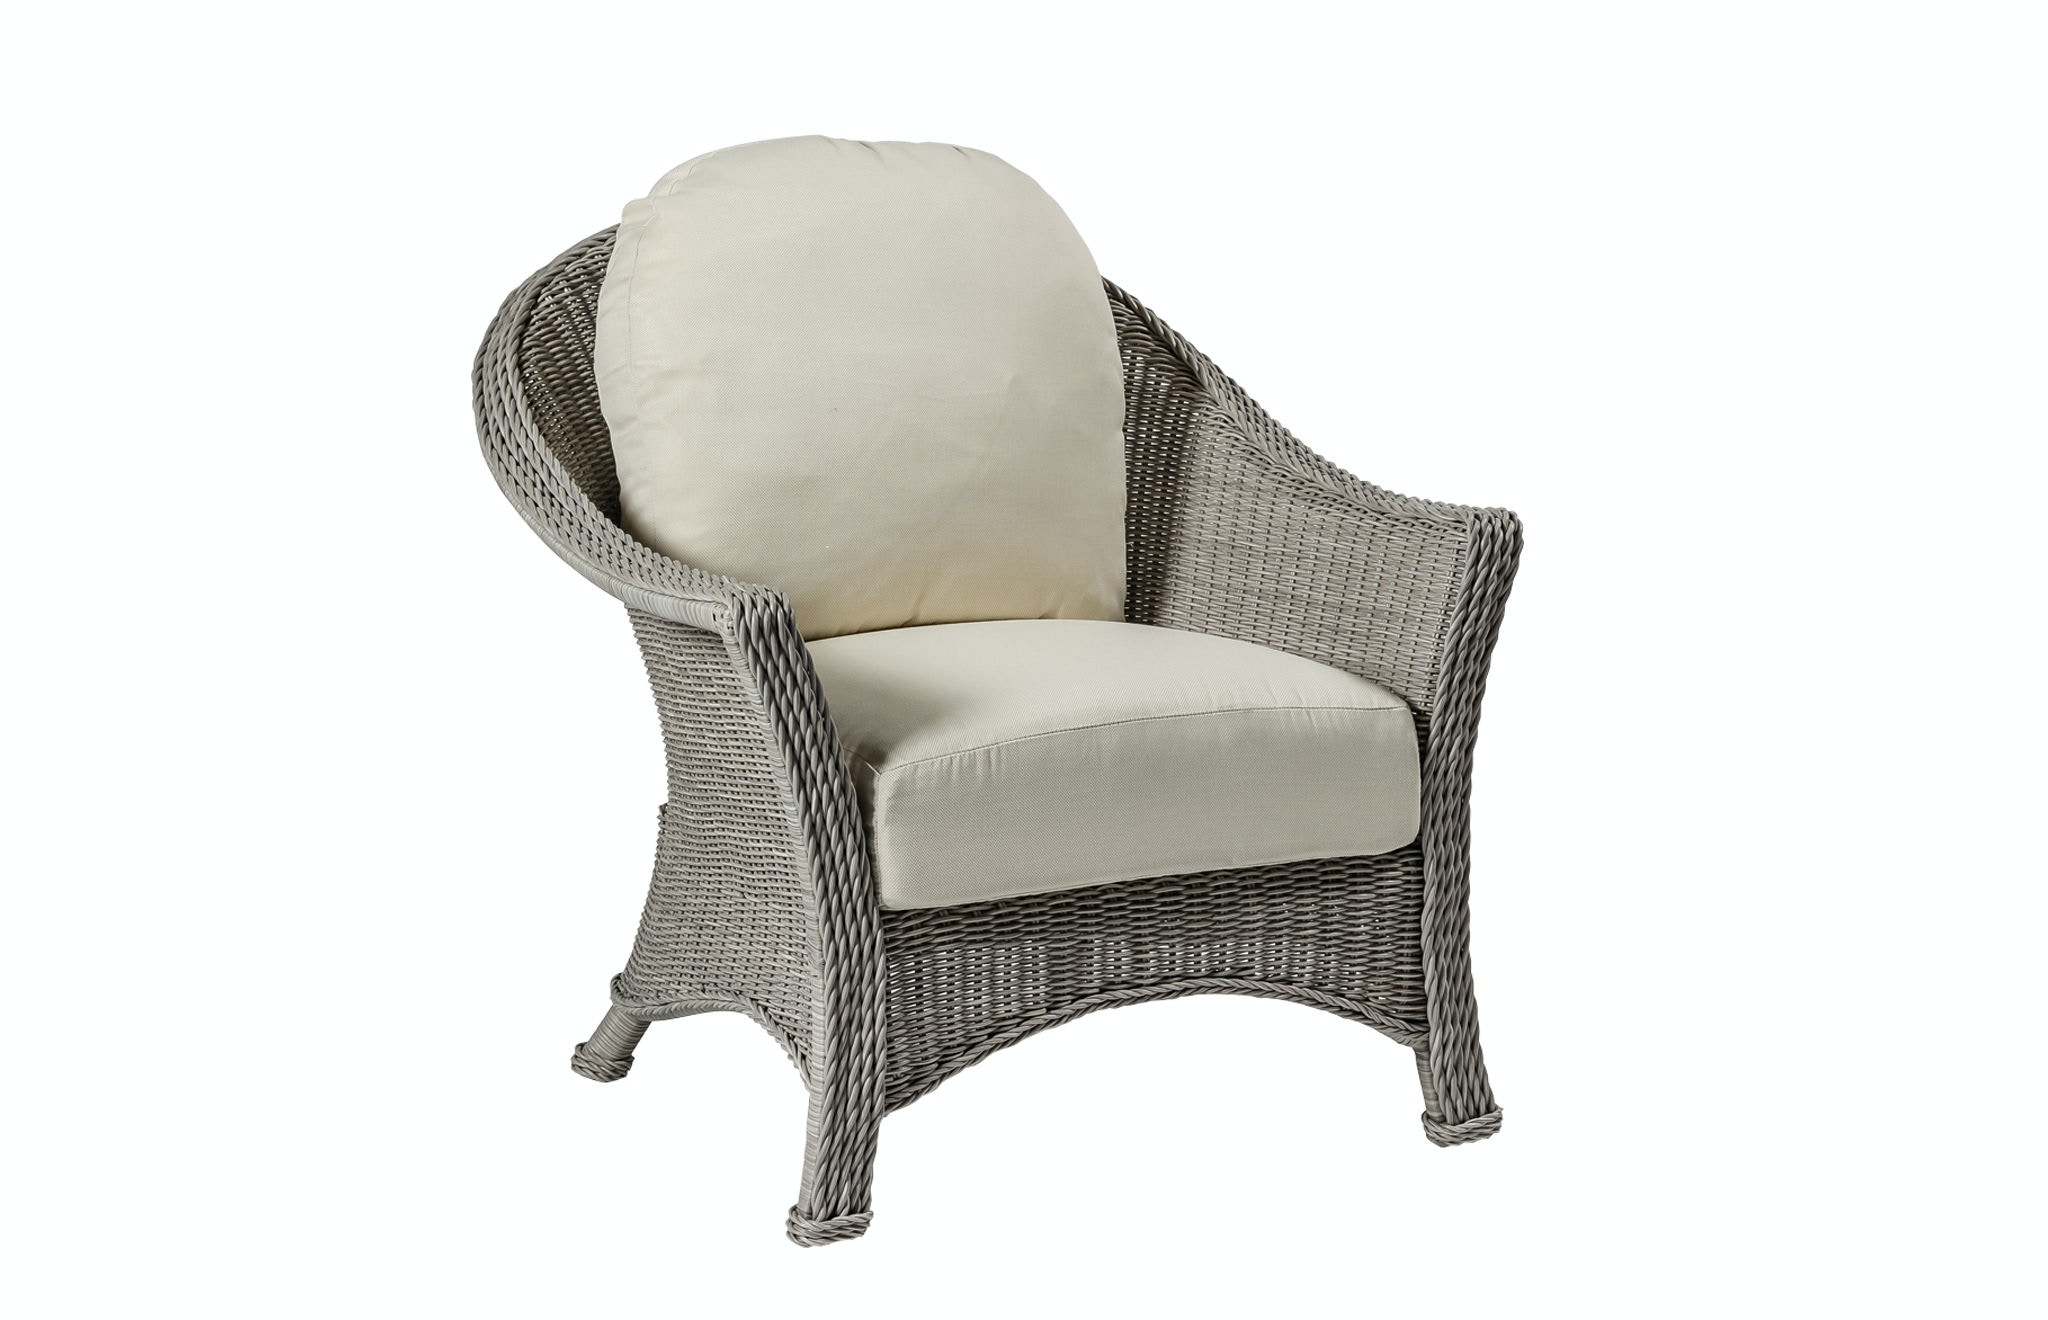 Summer Clics Outdoor Patio Regent Lounge Chair 352724 Priba. About Priba  Furniture Interiors